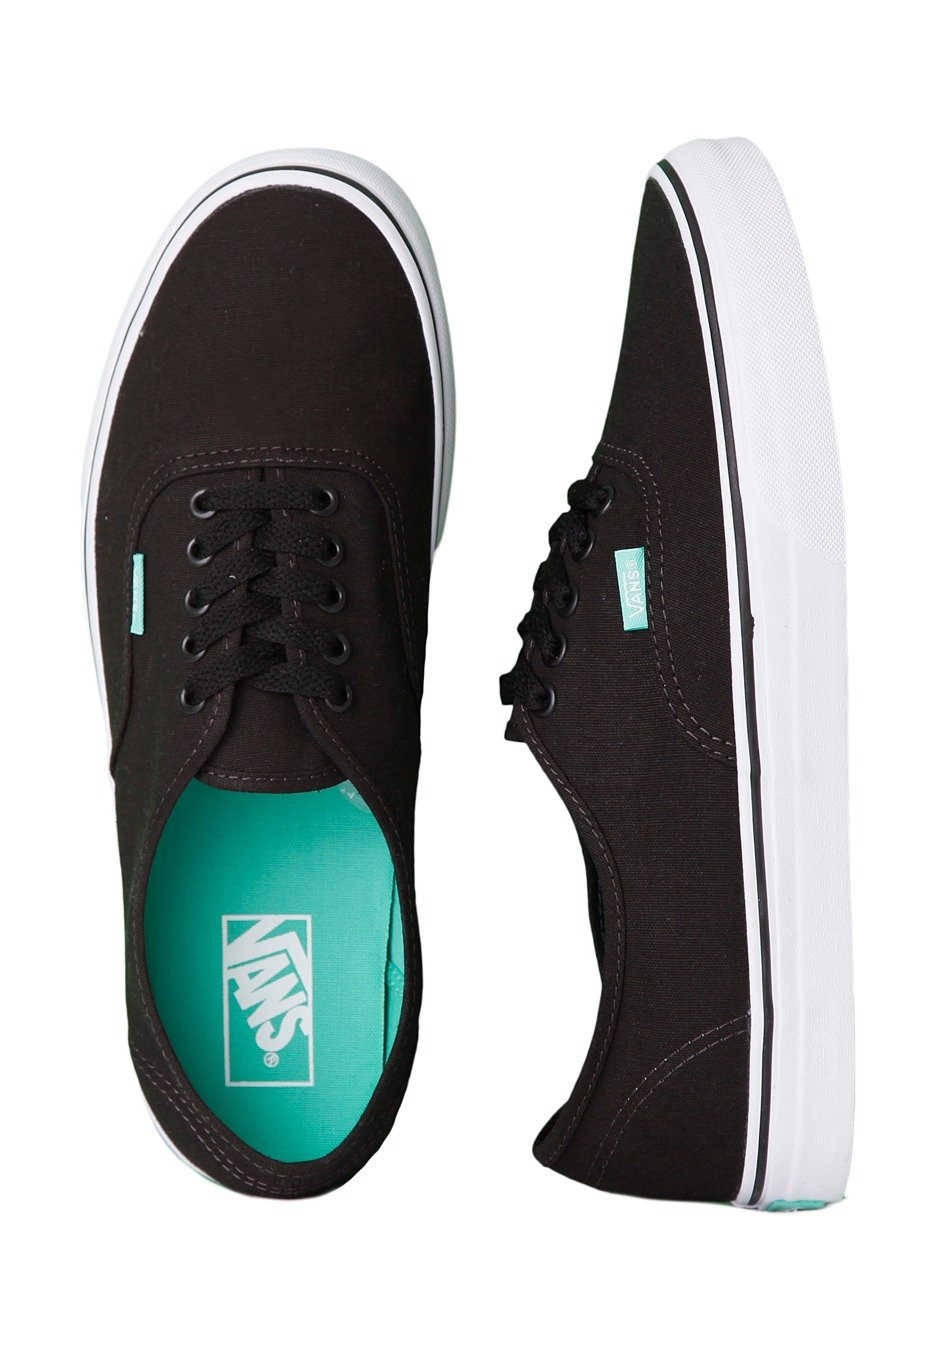 bbd622499f4f Vans - Authentic Pop Black Aqua Green - Shoes - Impericon.com Worldwide